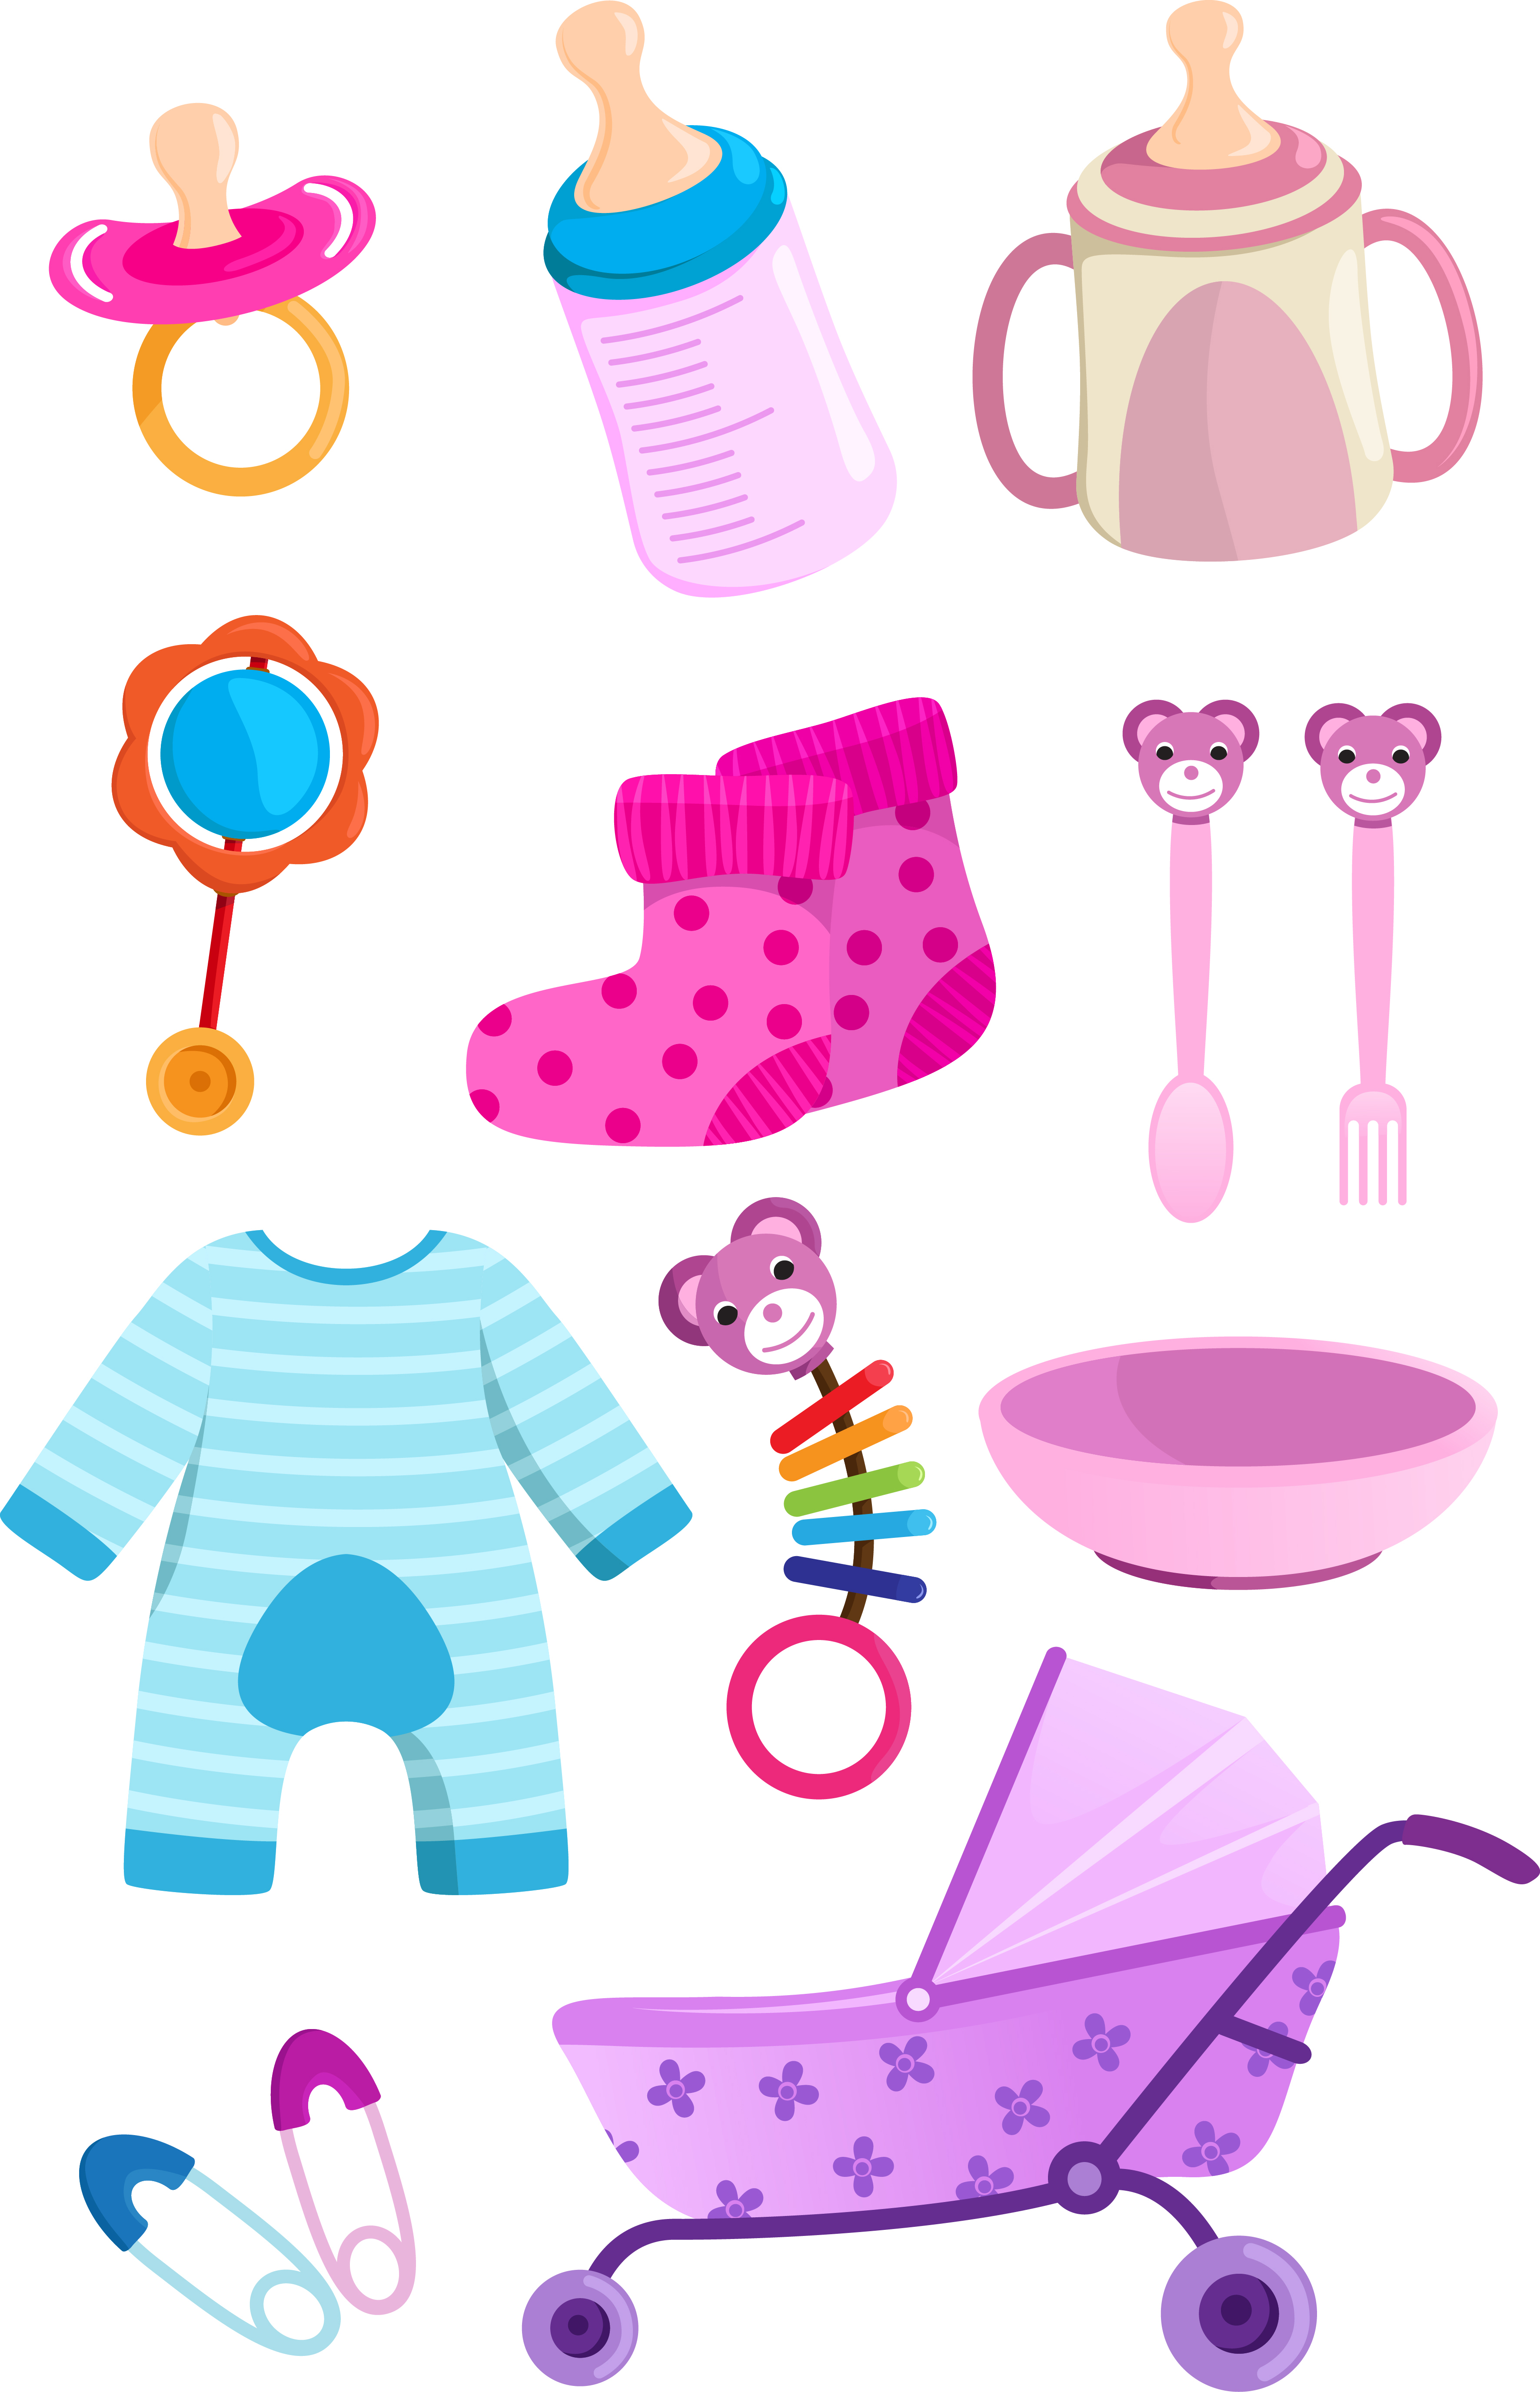 baby stuff pictures clipart best baby items clipart free black and white baby items clipart images free